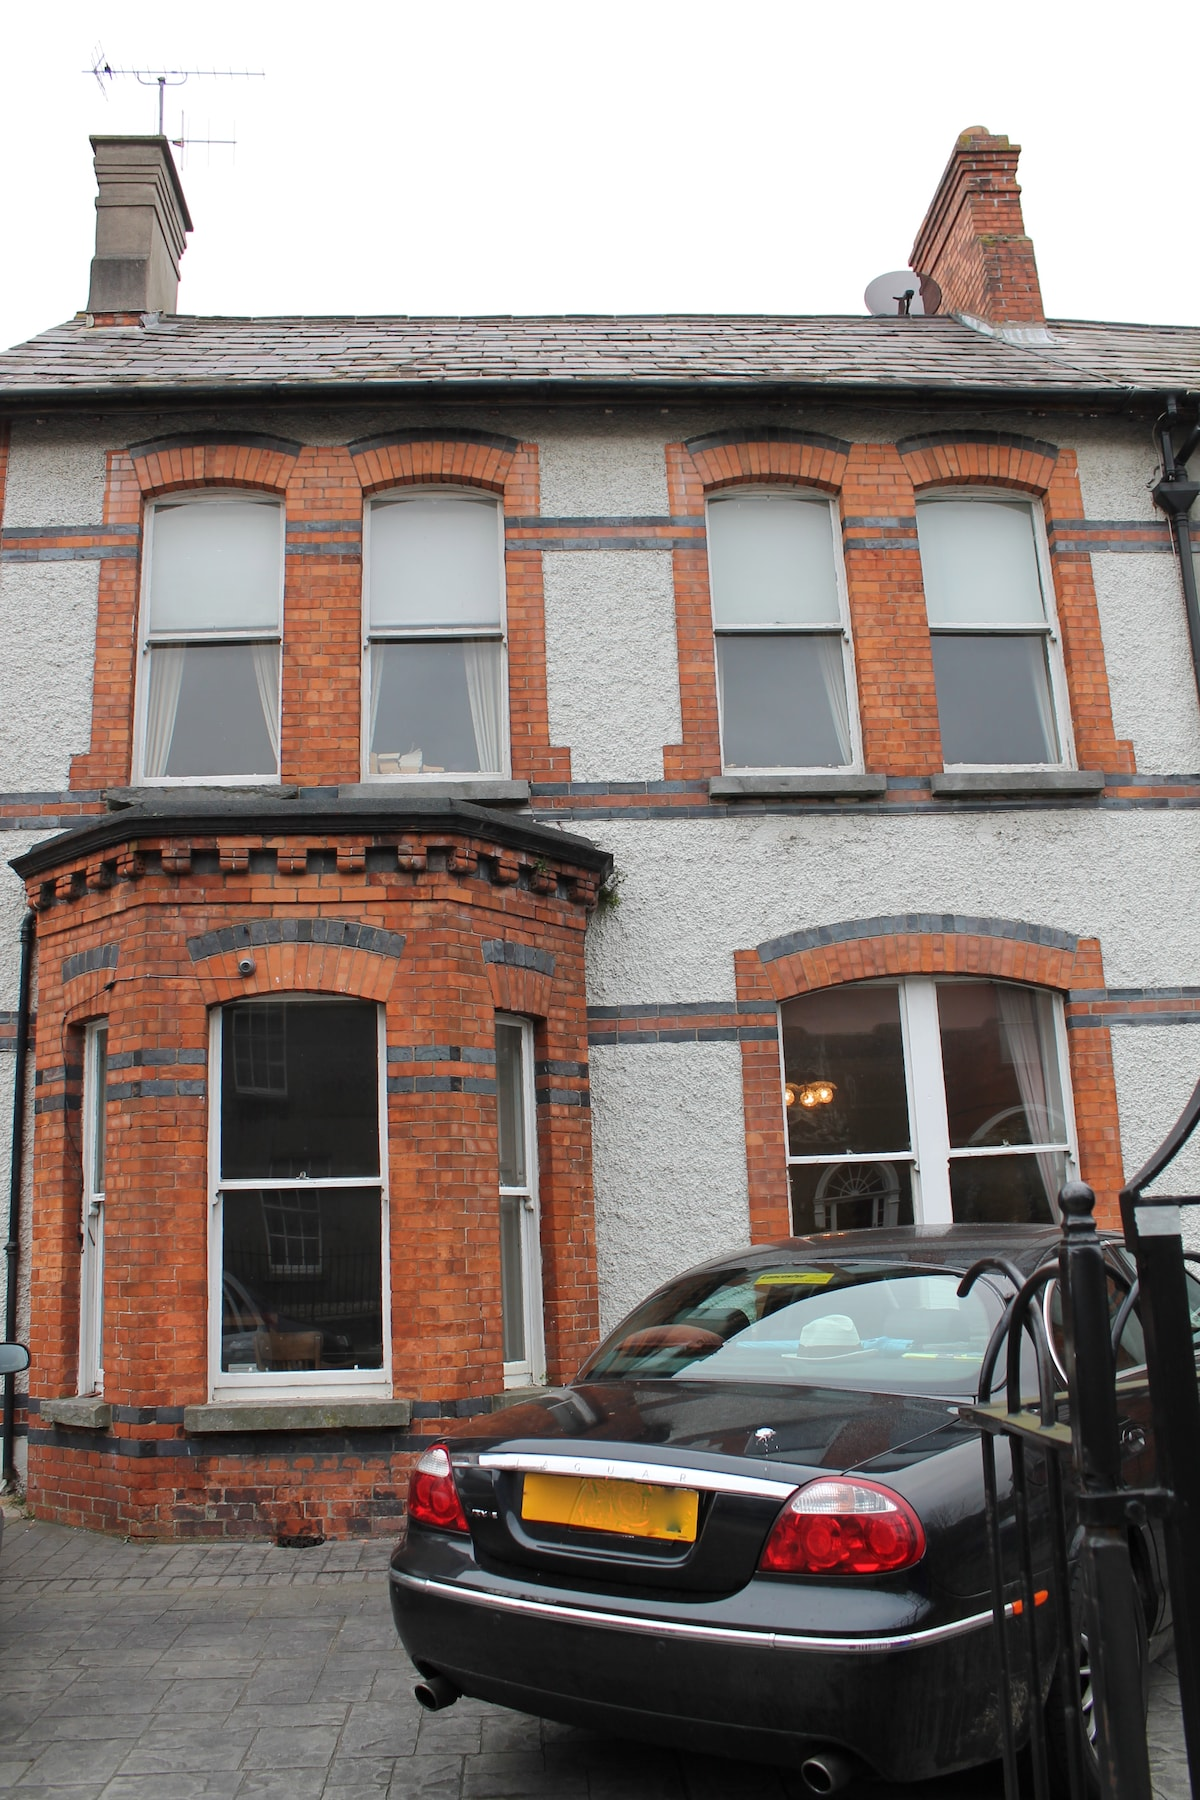 the house with private parking